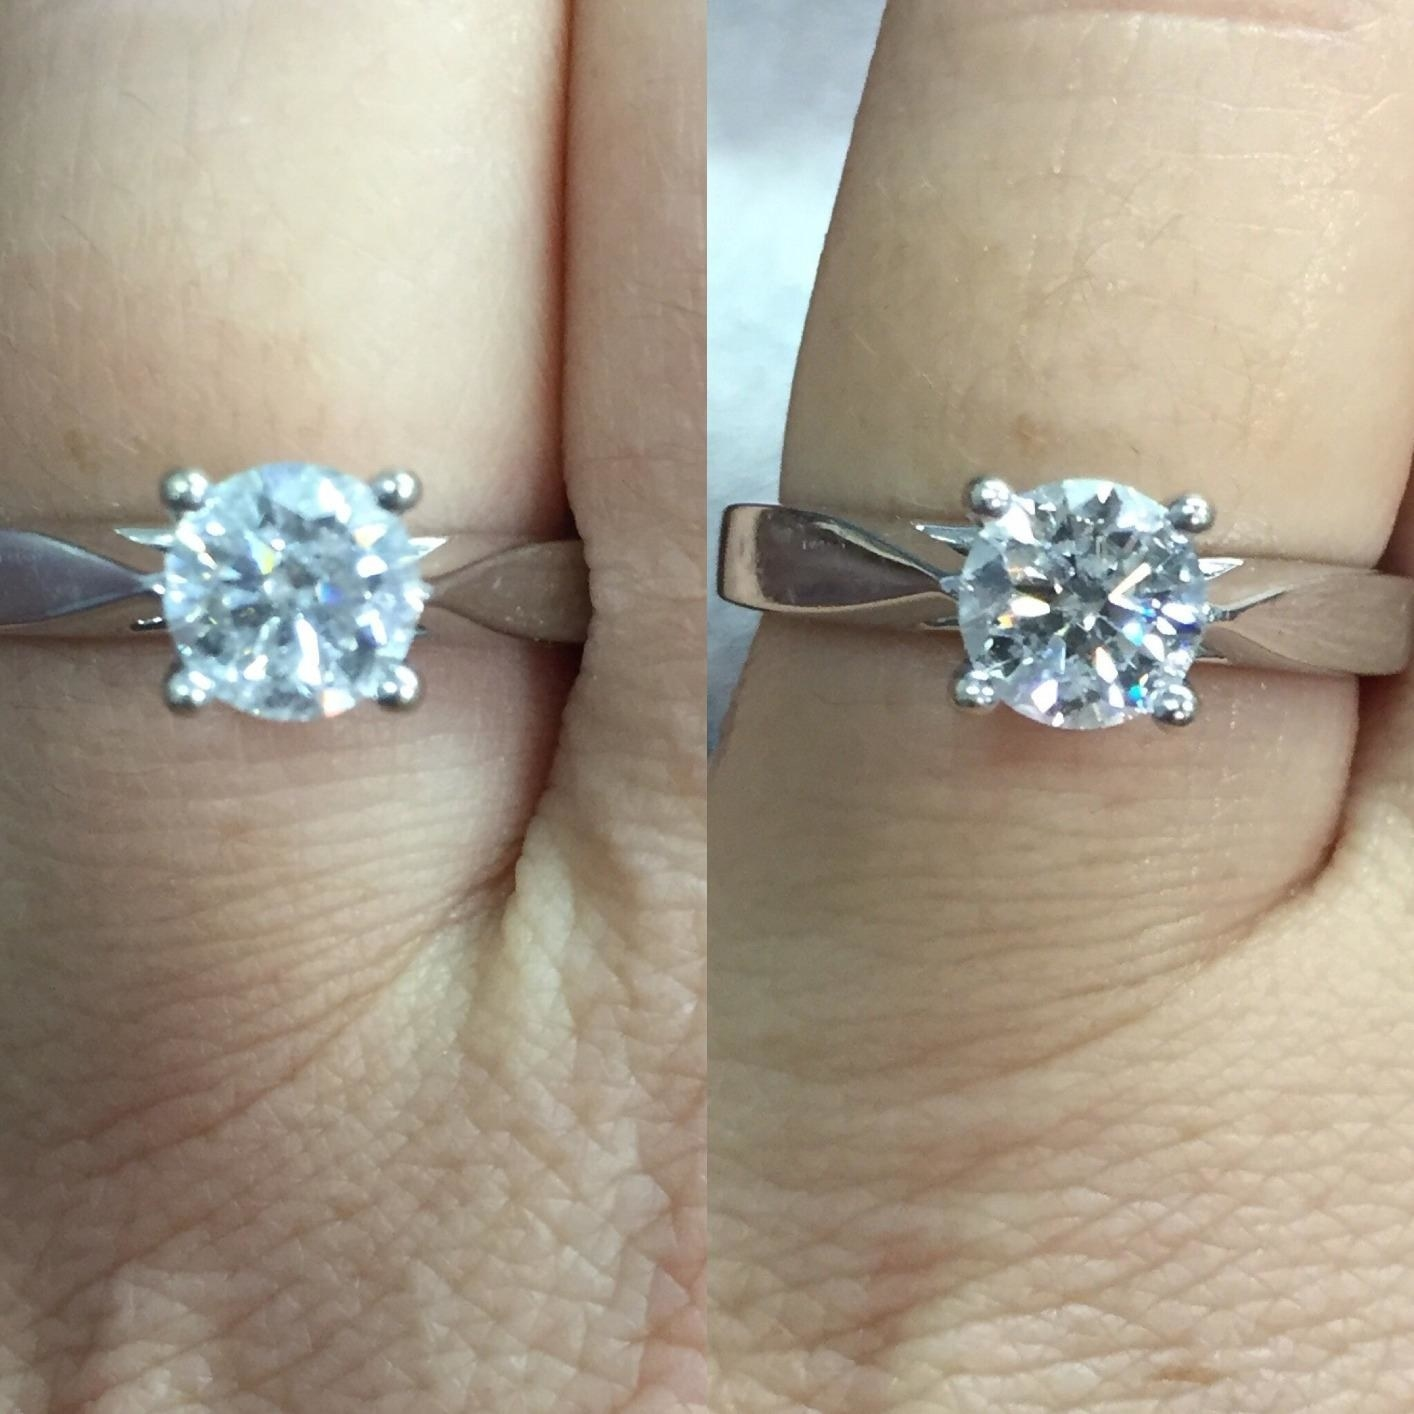 Reviewer photo showing before and after results of using jewelry cleaning pen on ring